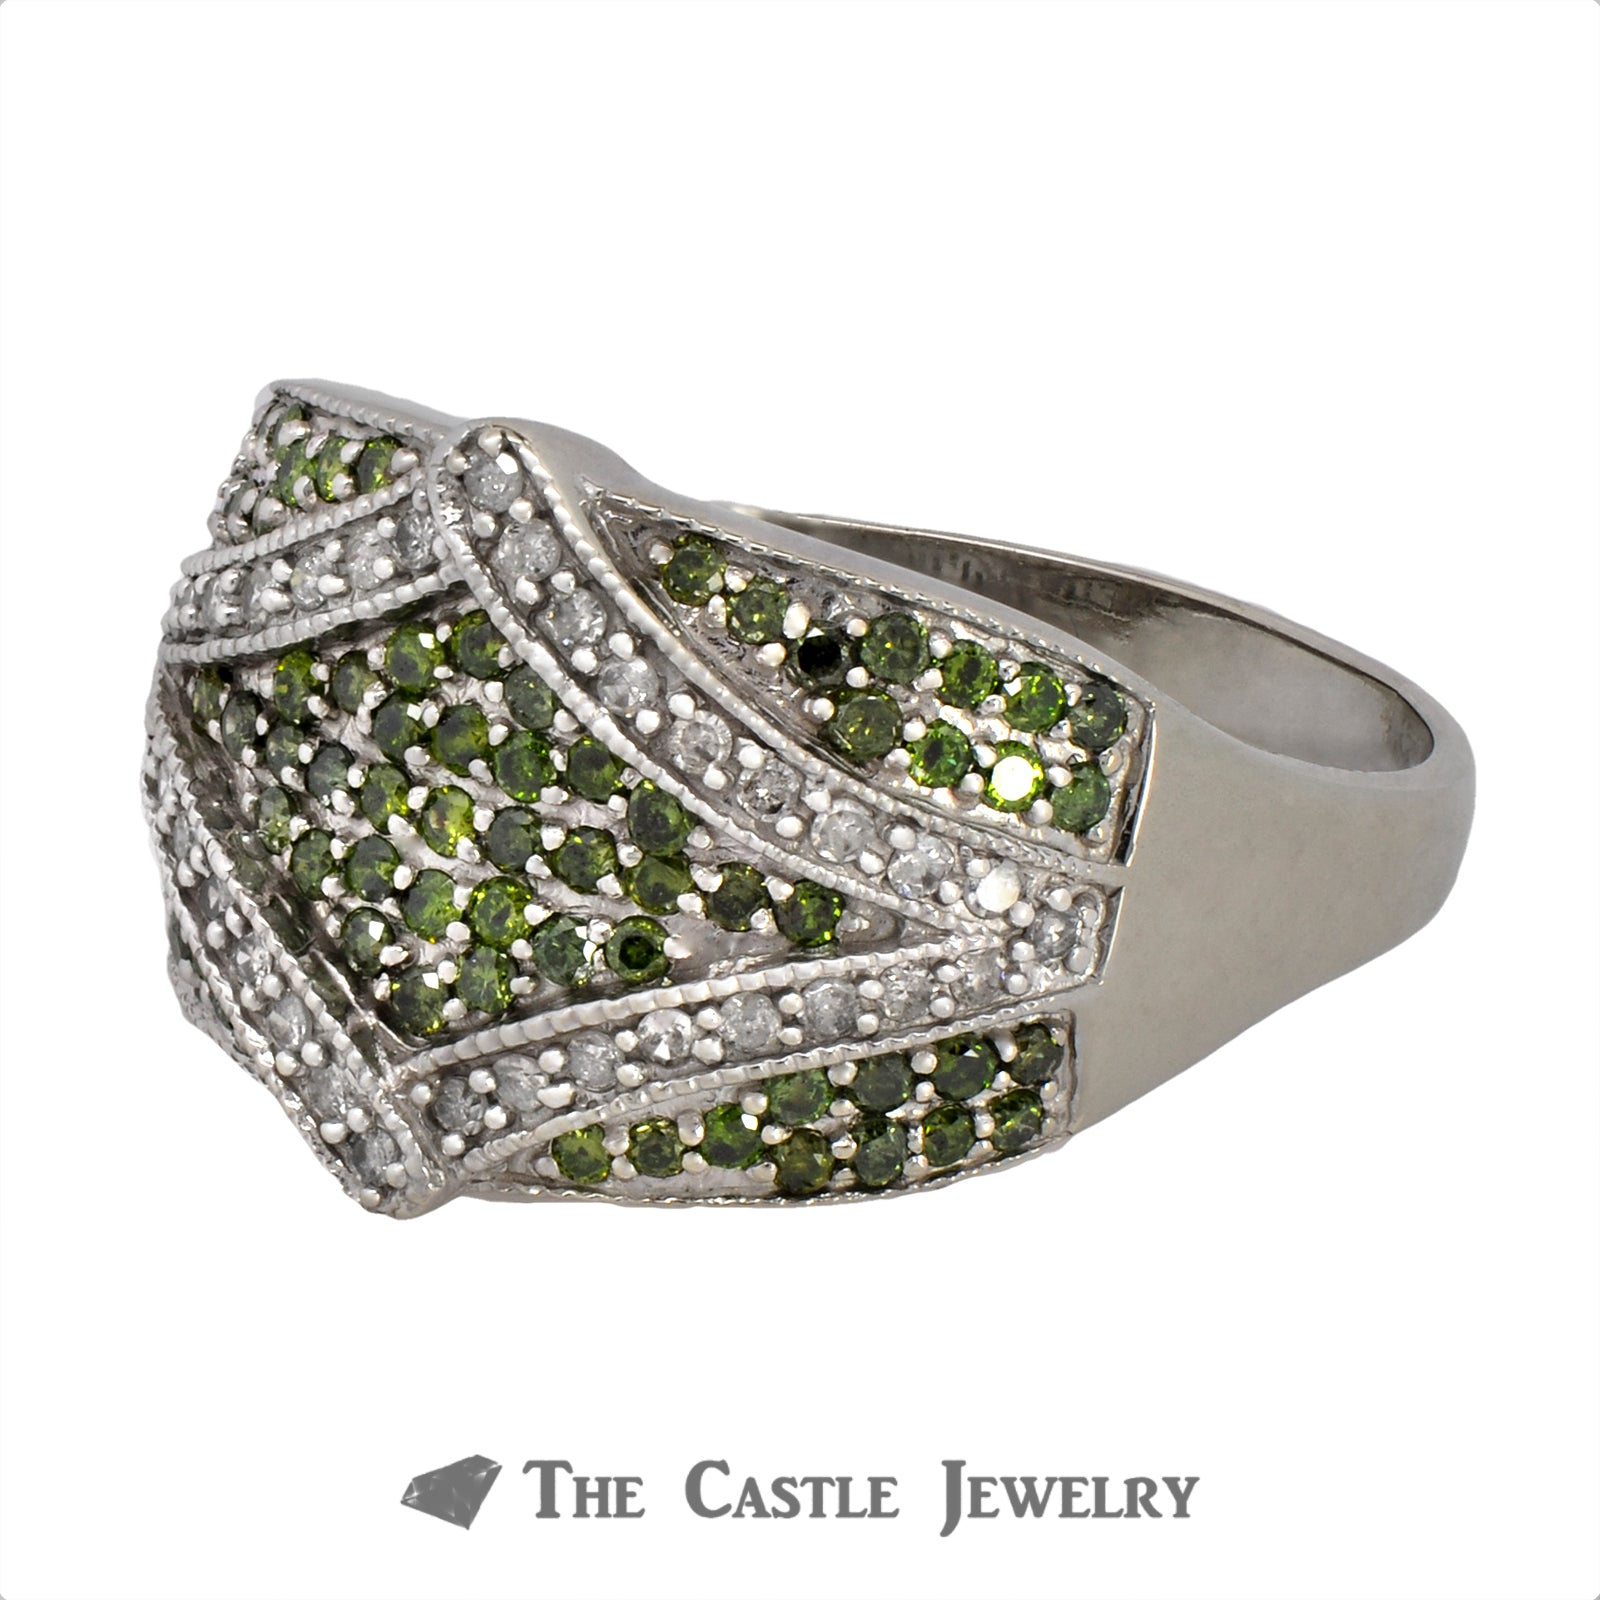 Green & White Diamond Cluster Ring With Fancy Rectangle Shaped Design-2